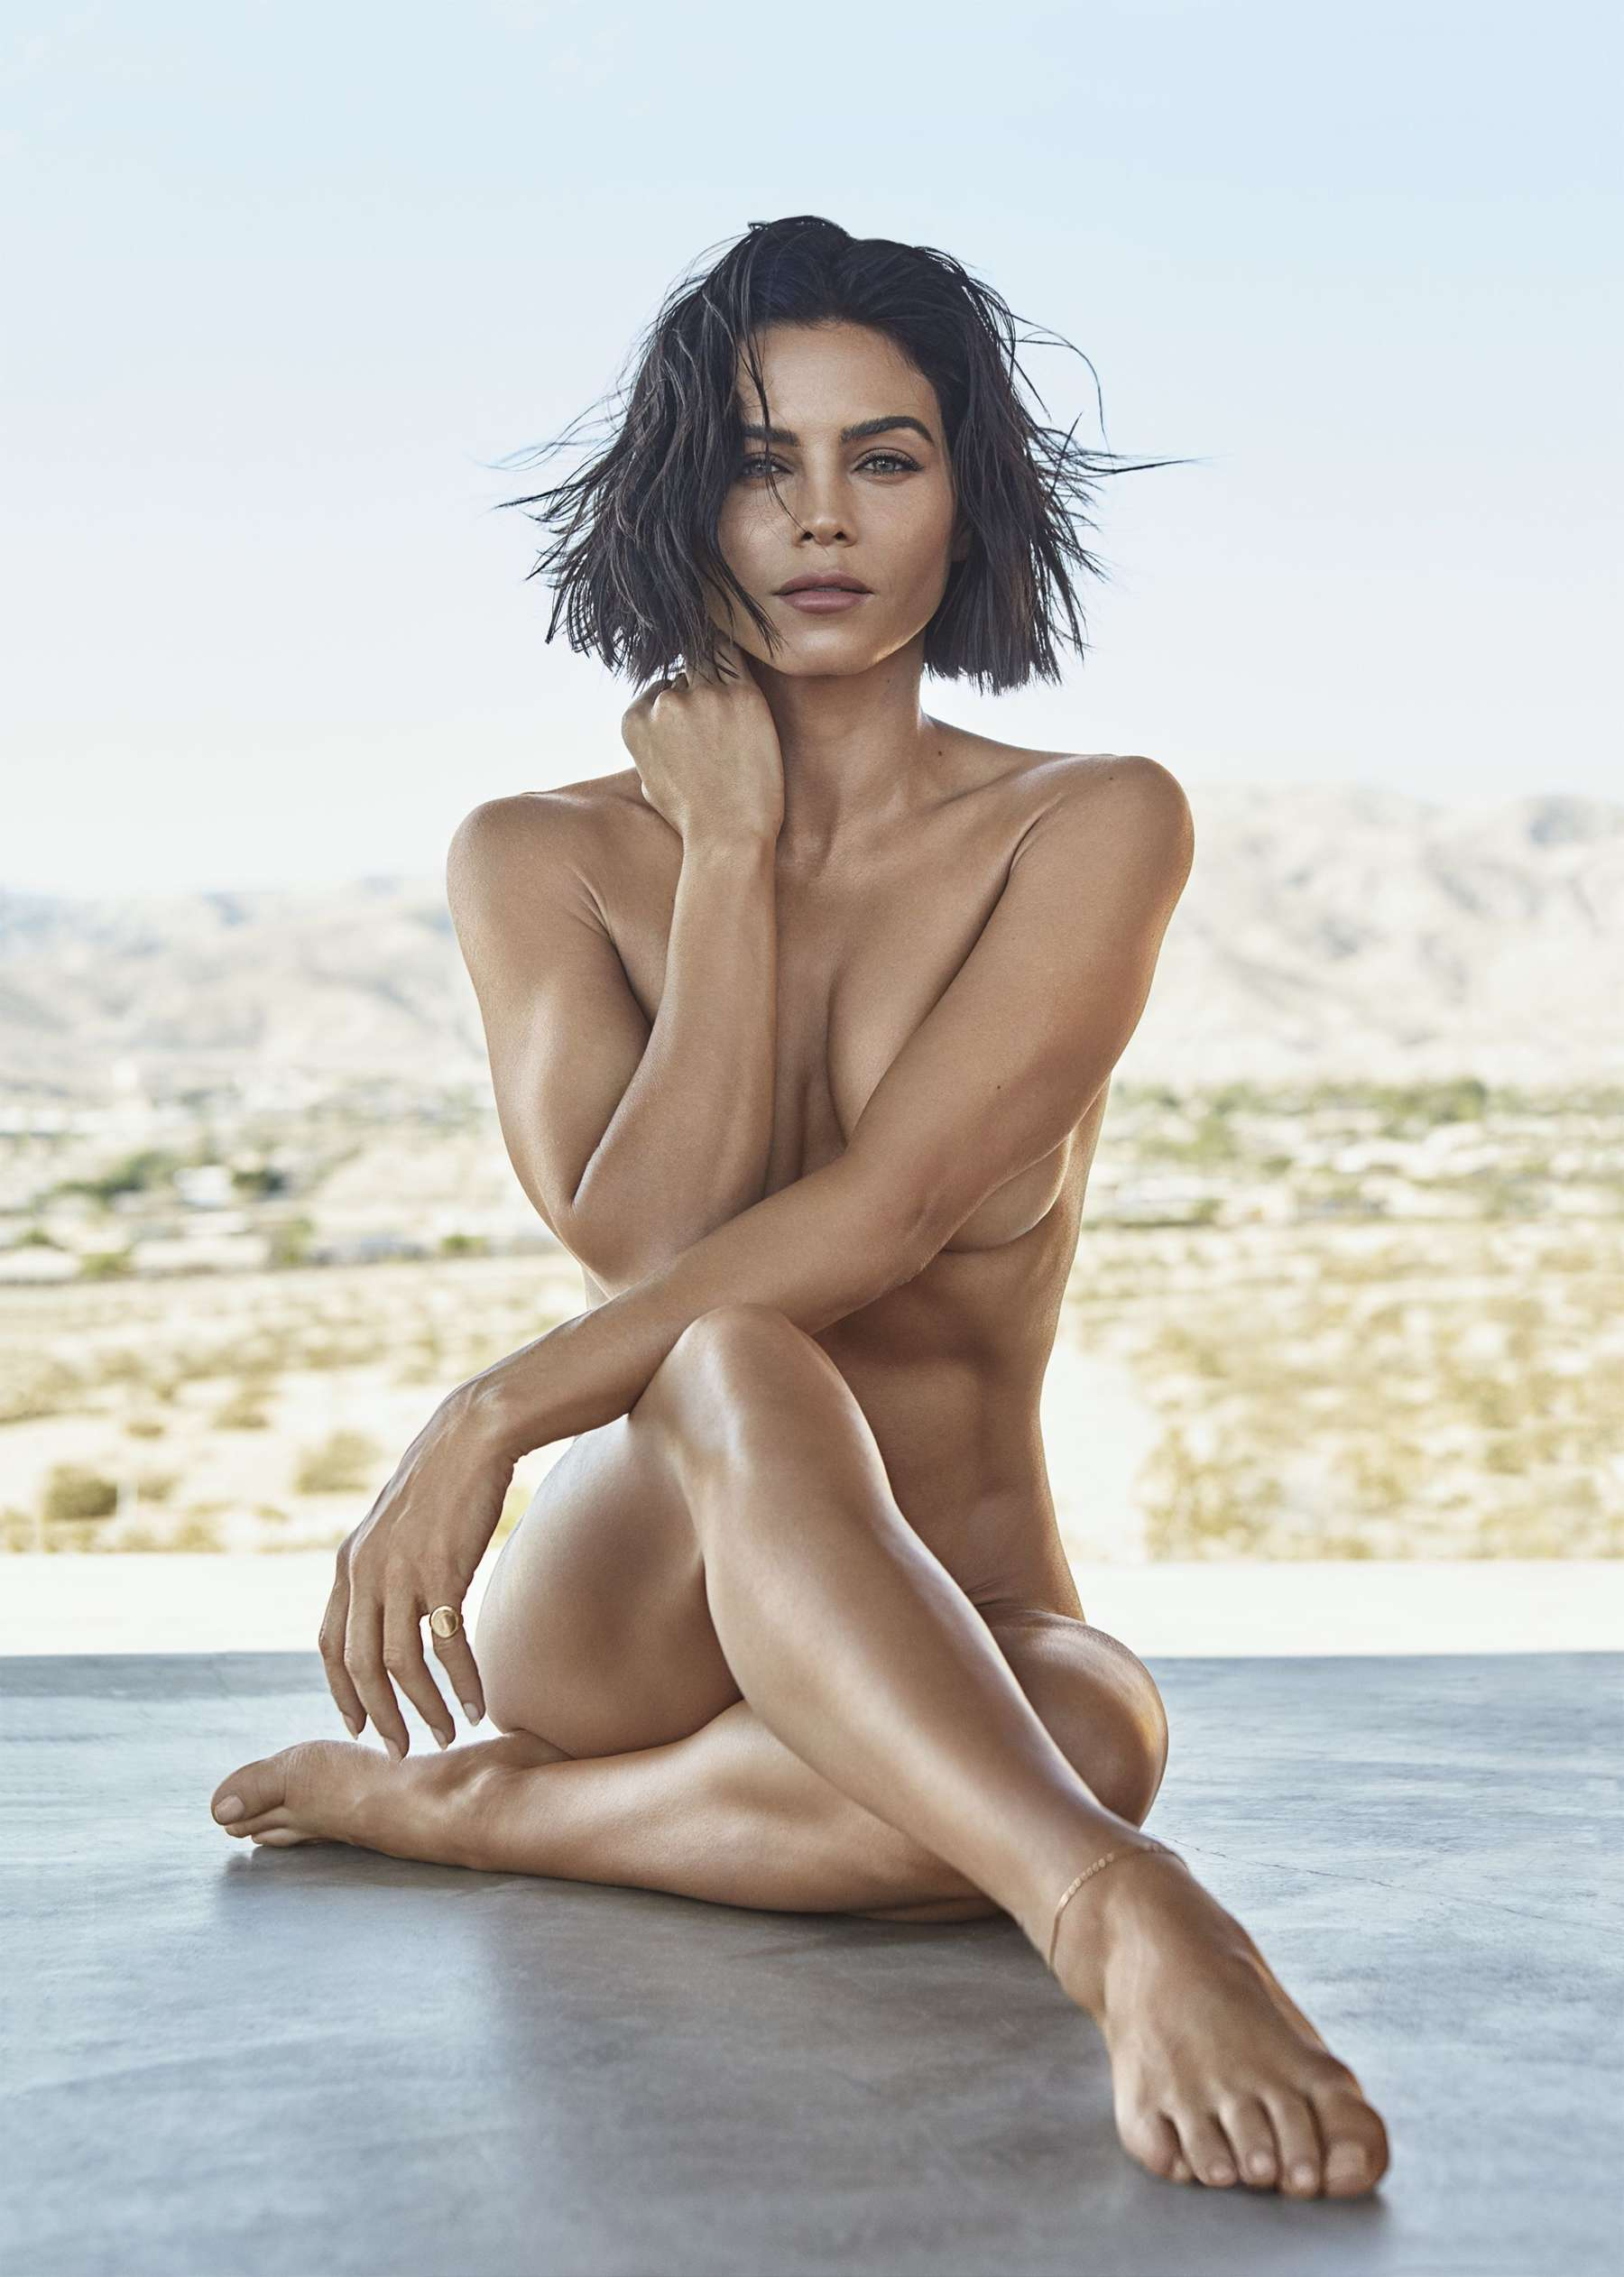 pics-of-naked-women-in-magazines-real-girls-in-street-nude